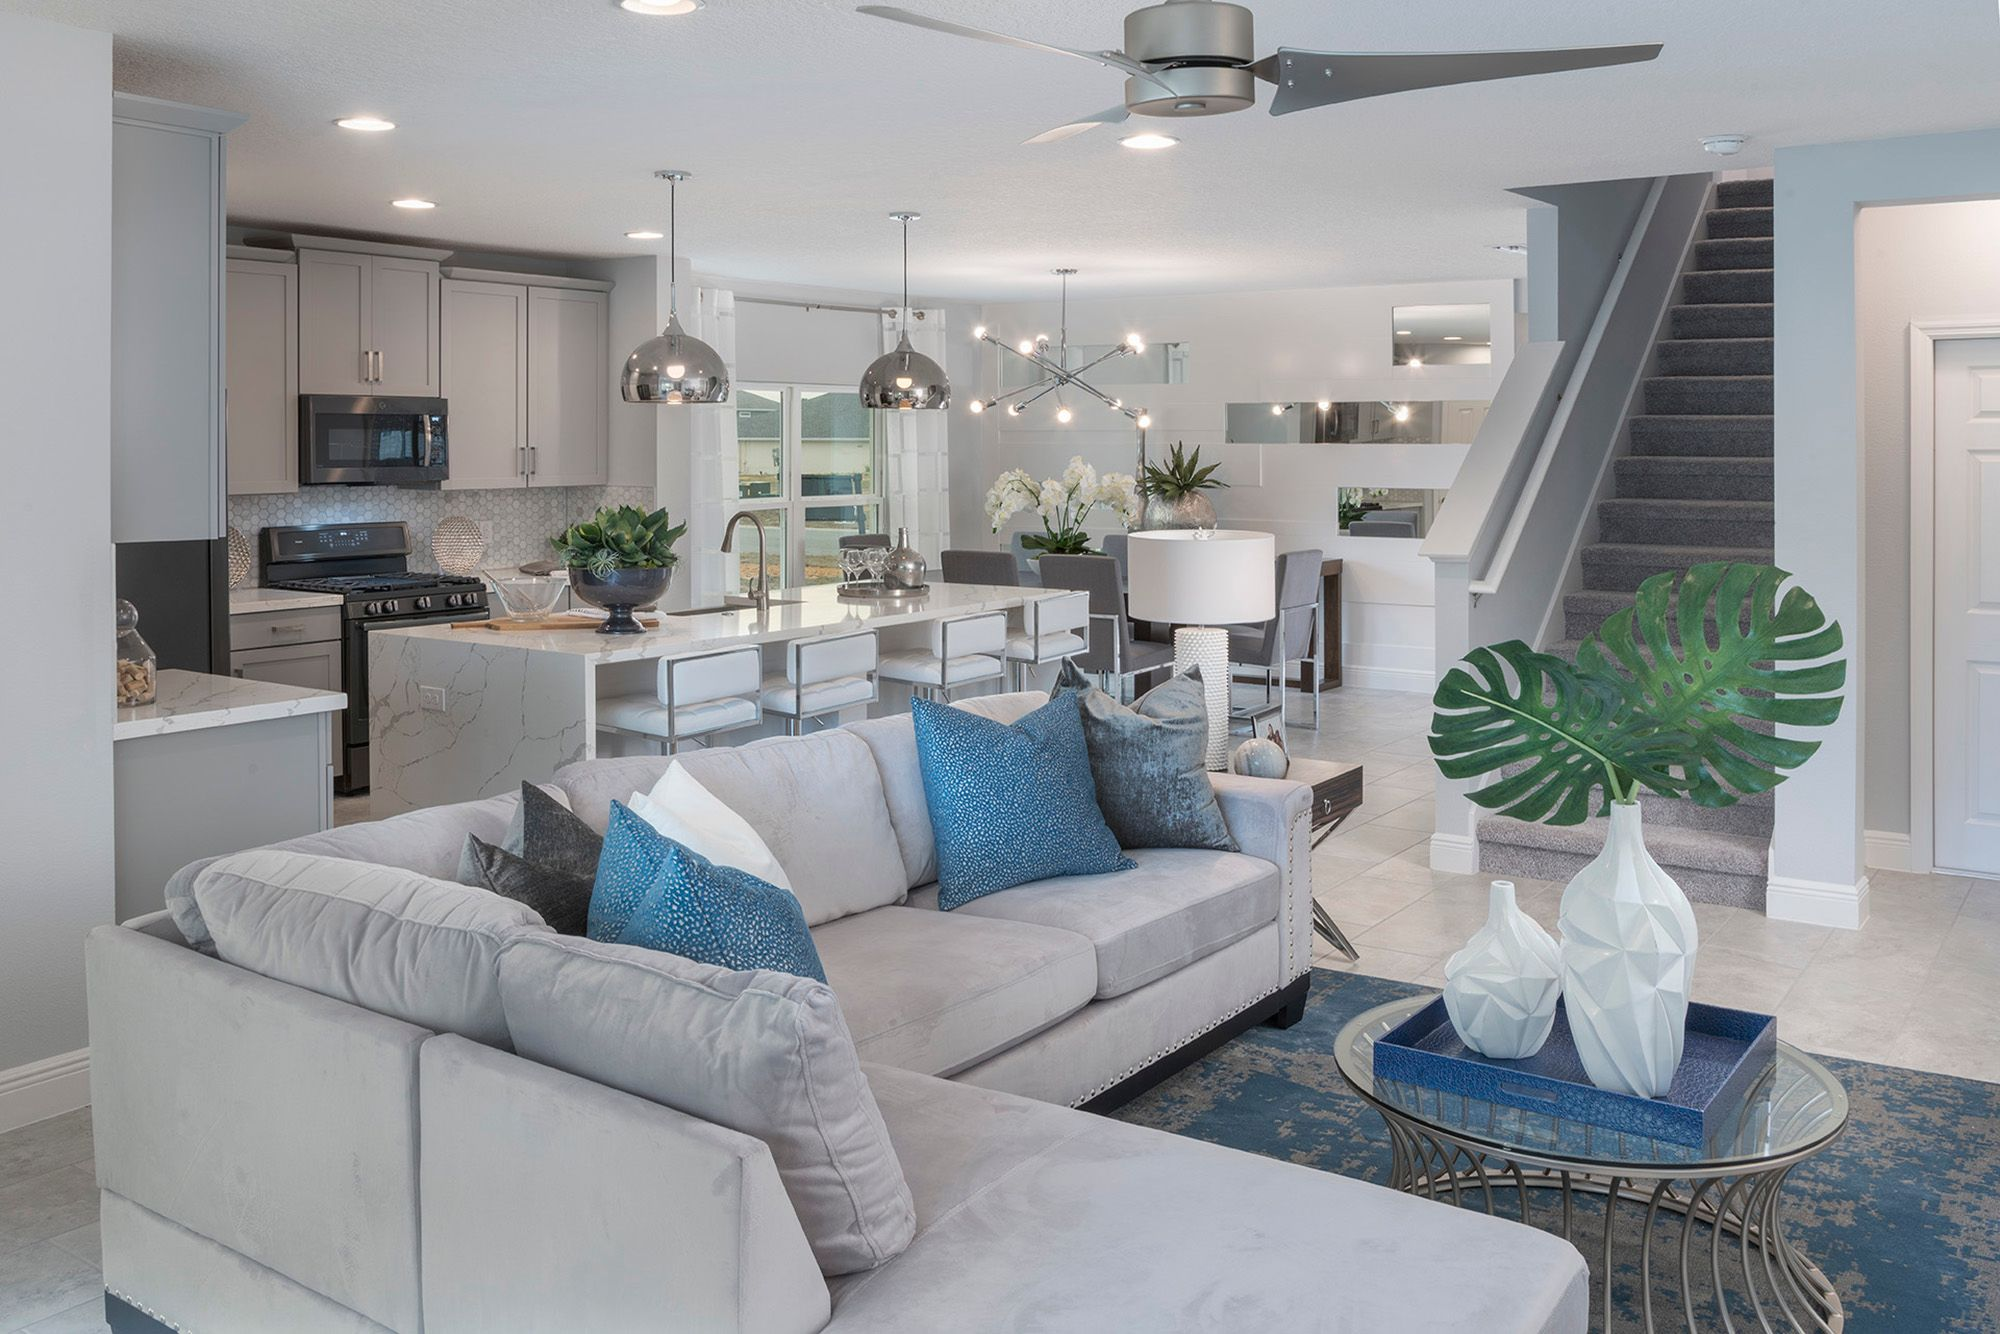 Living Area featured in the Wilshire By Hanover Family Builders in Orlando, FL